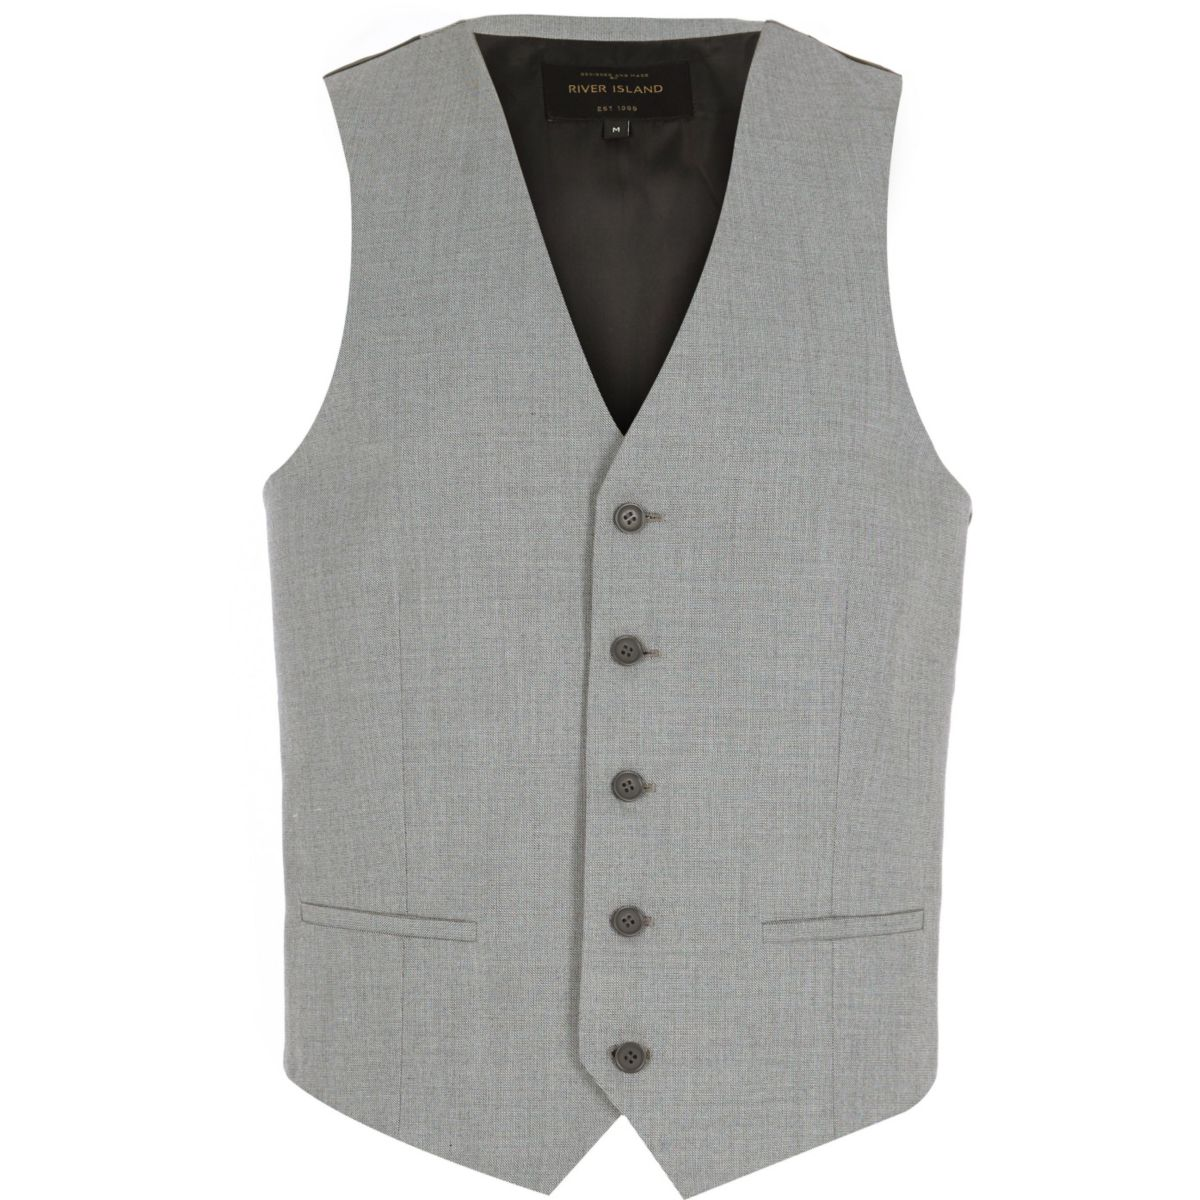 Light grey single breasted waistcoat